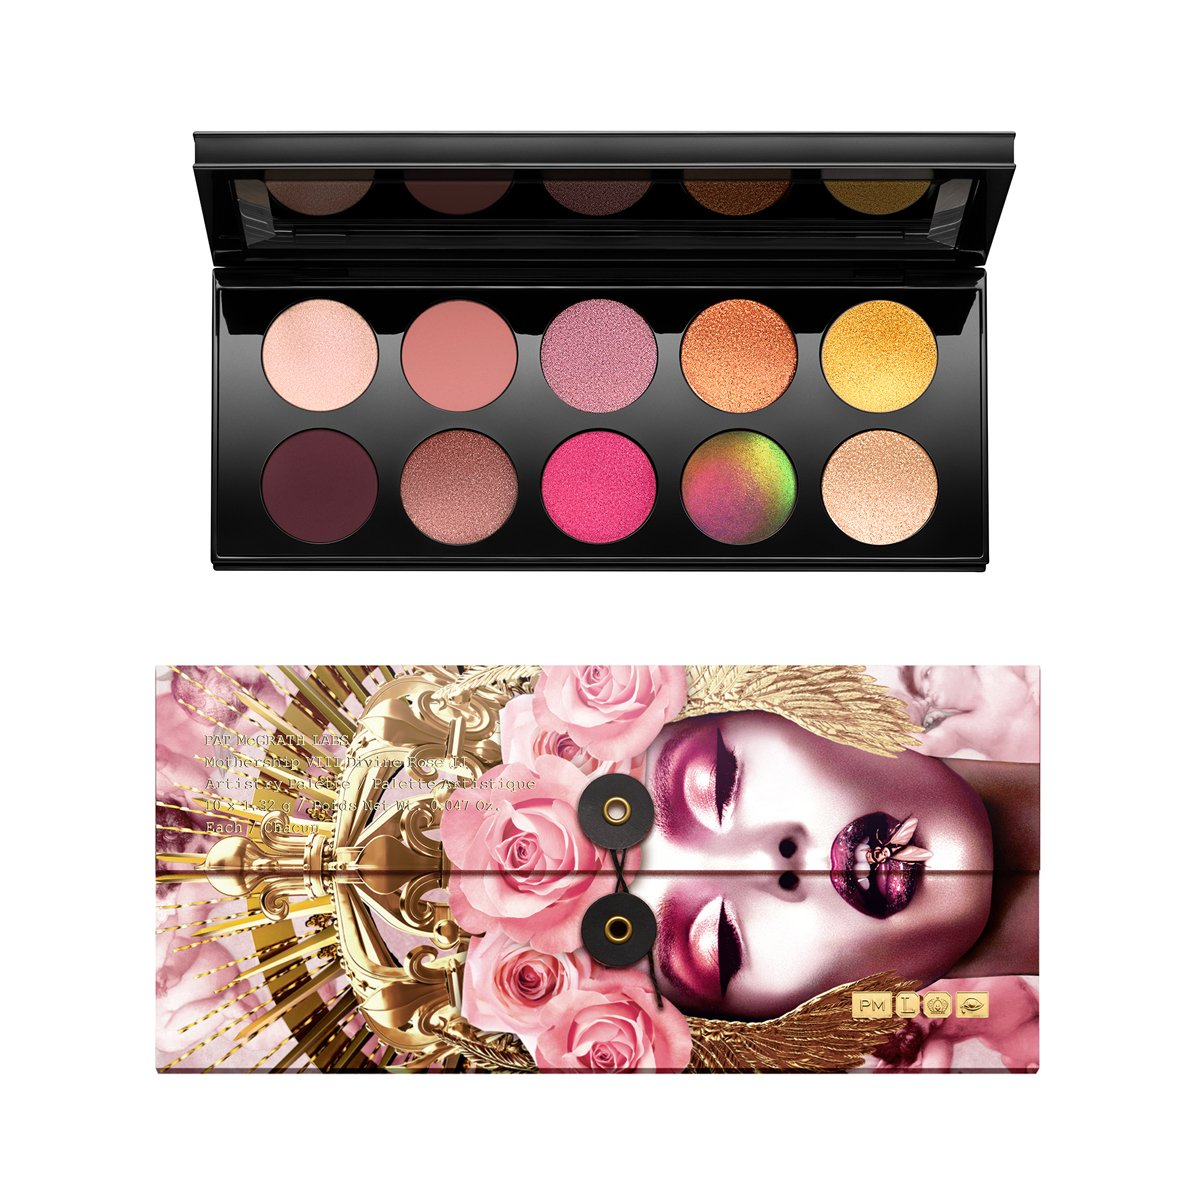 MOTHERSHIP VIII DIVINE ROSE II ARTISTRY PALETTE - PAT MCGRATH